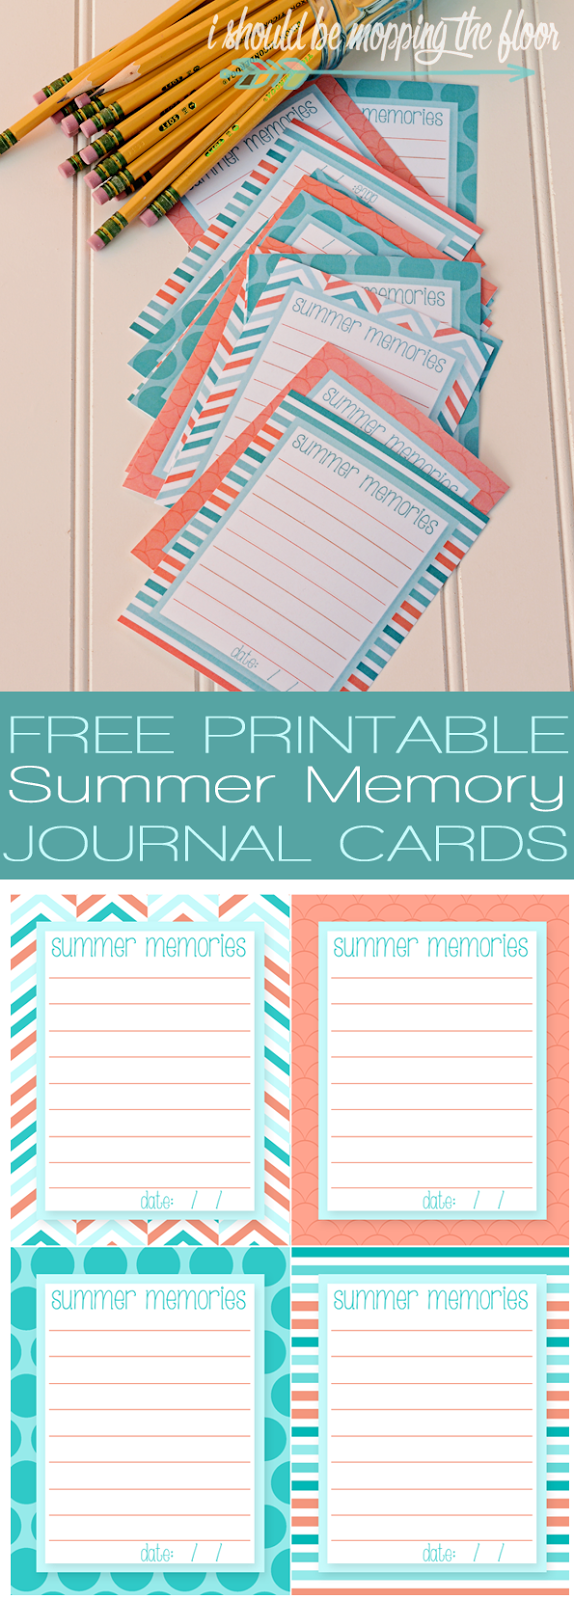 graphic regarding Free Printable Journal Cards named Absolutely free Printable Summertime Memory Magazine Playing cards i really should be